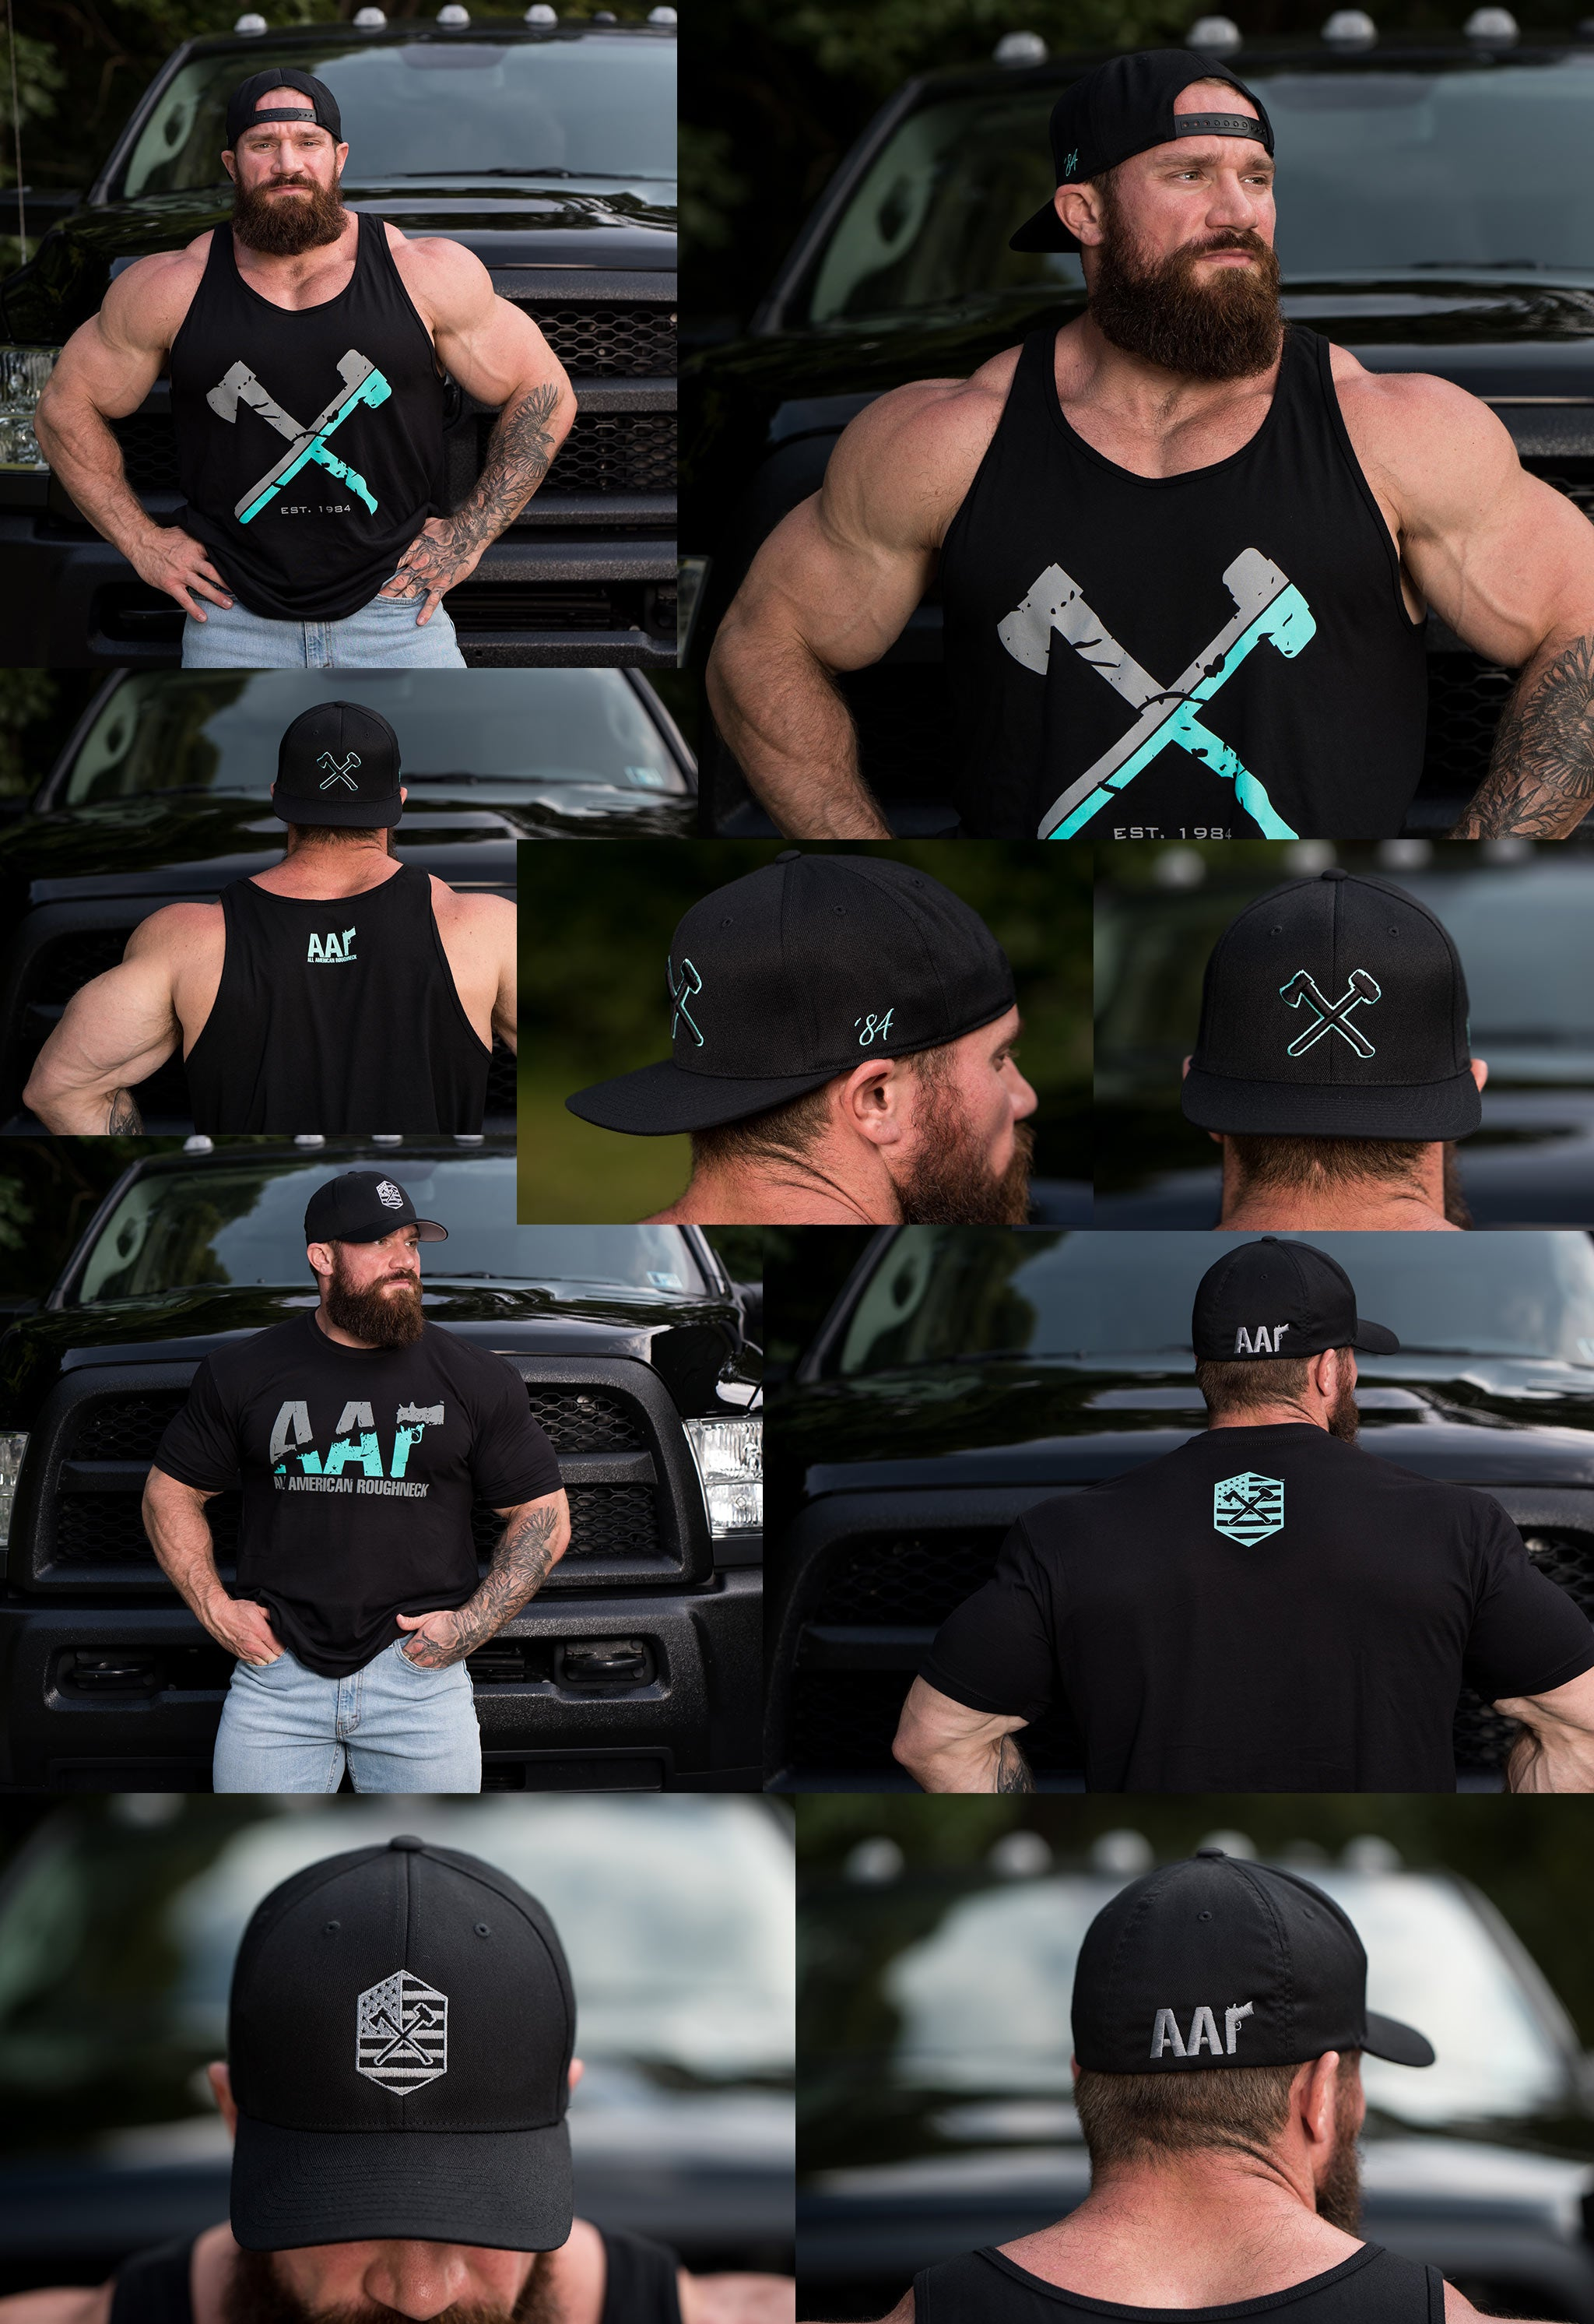 Mint Tees, Tanks, and Hats